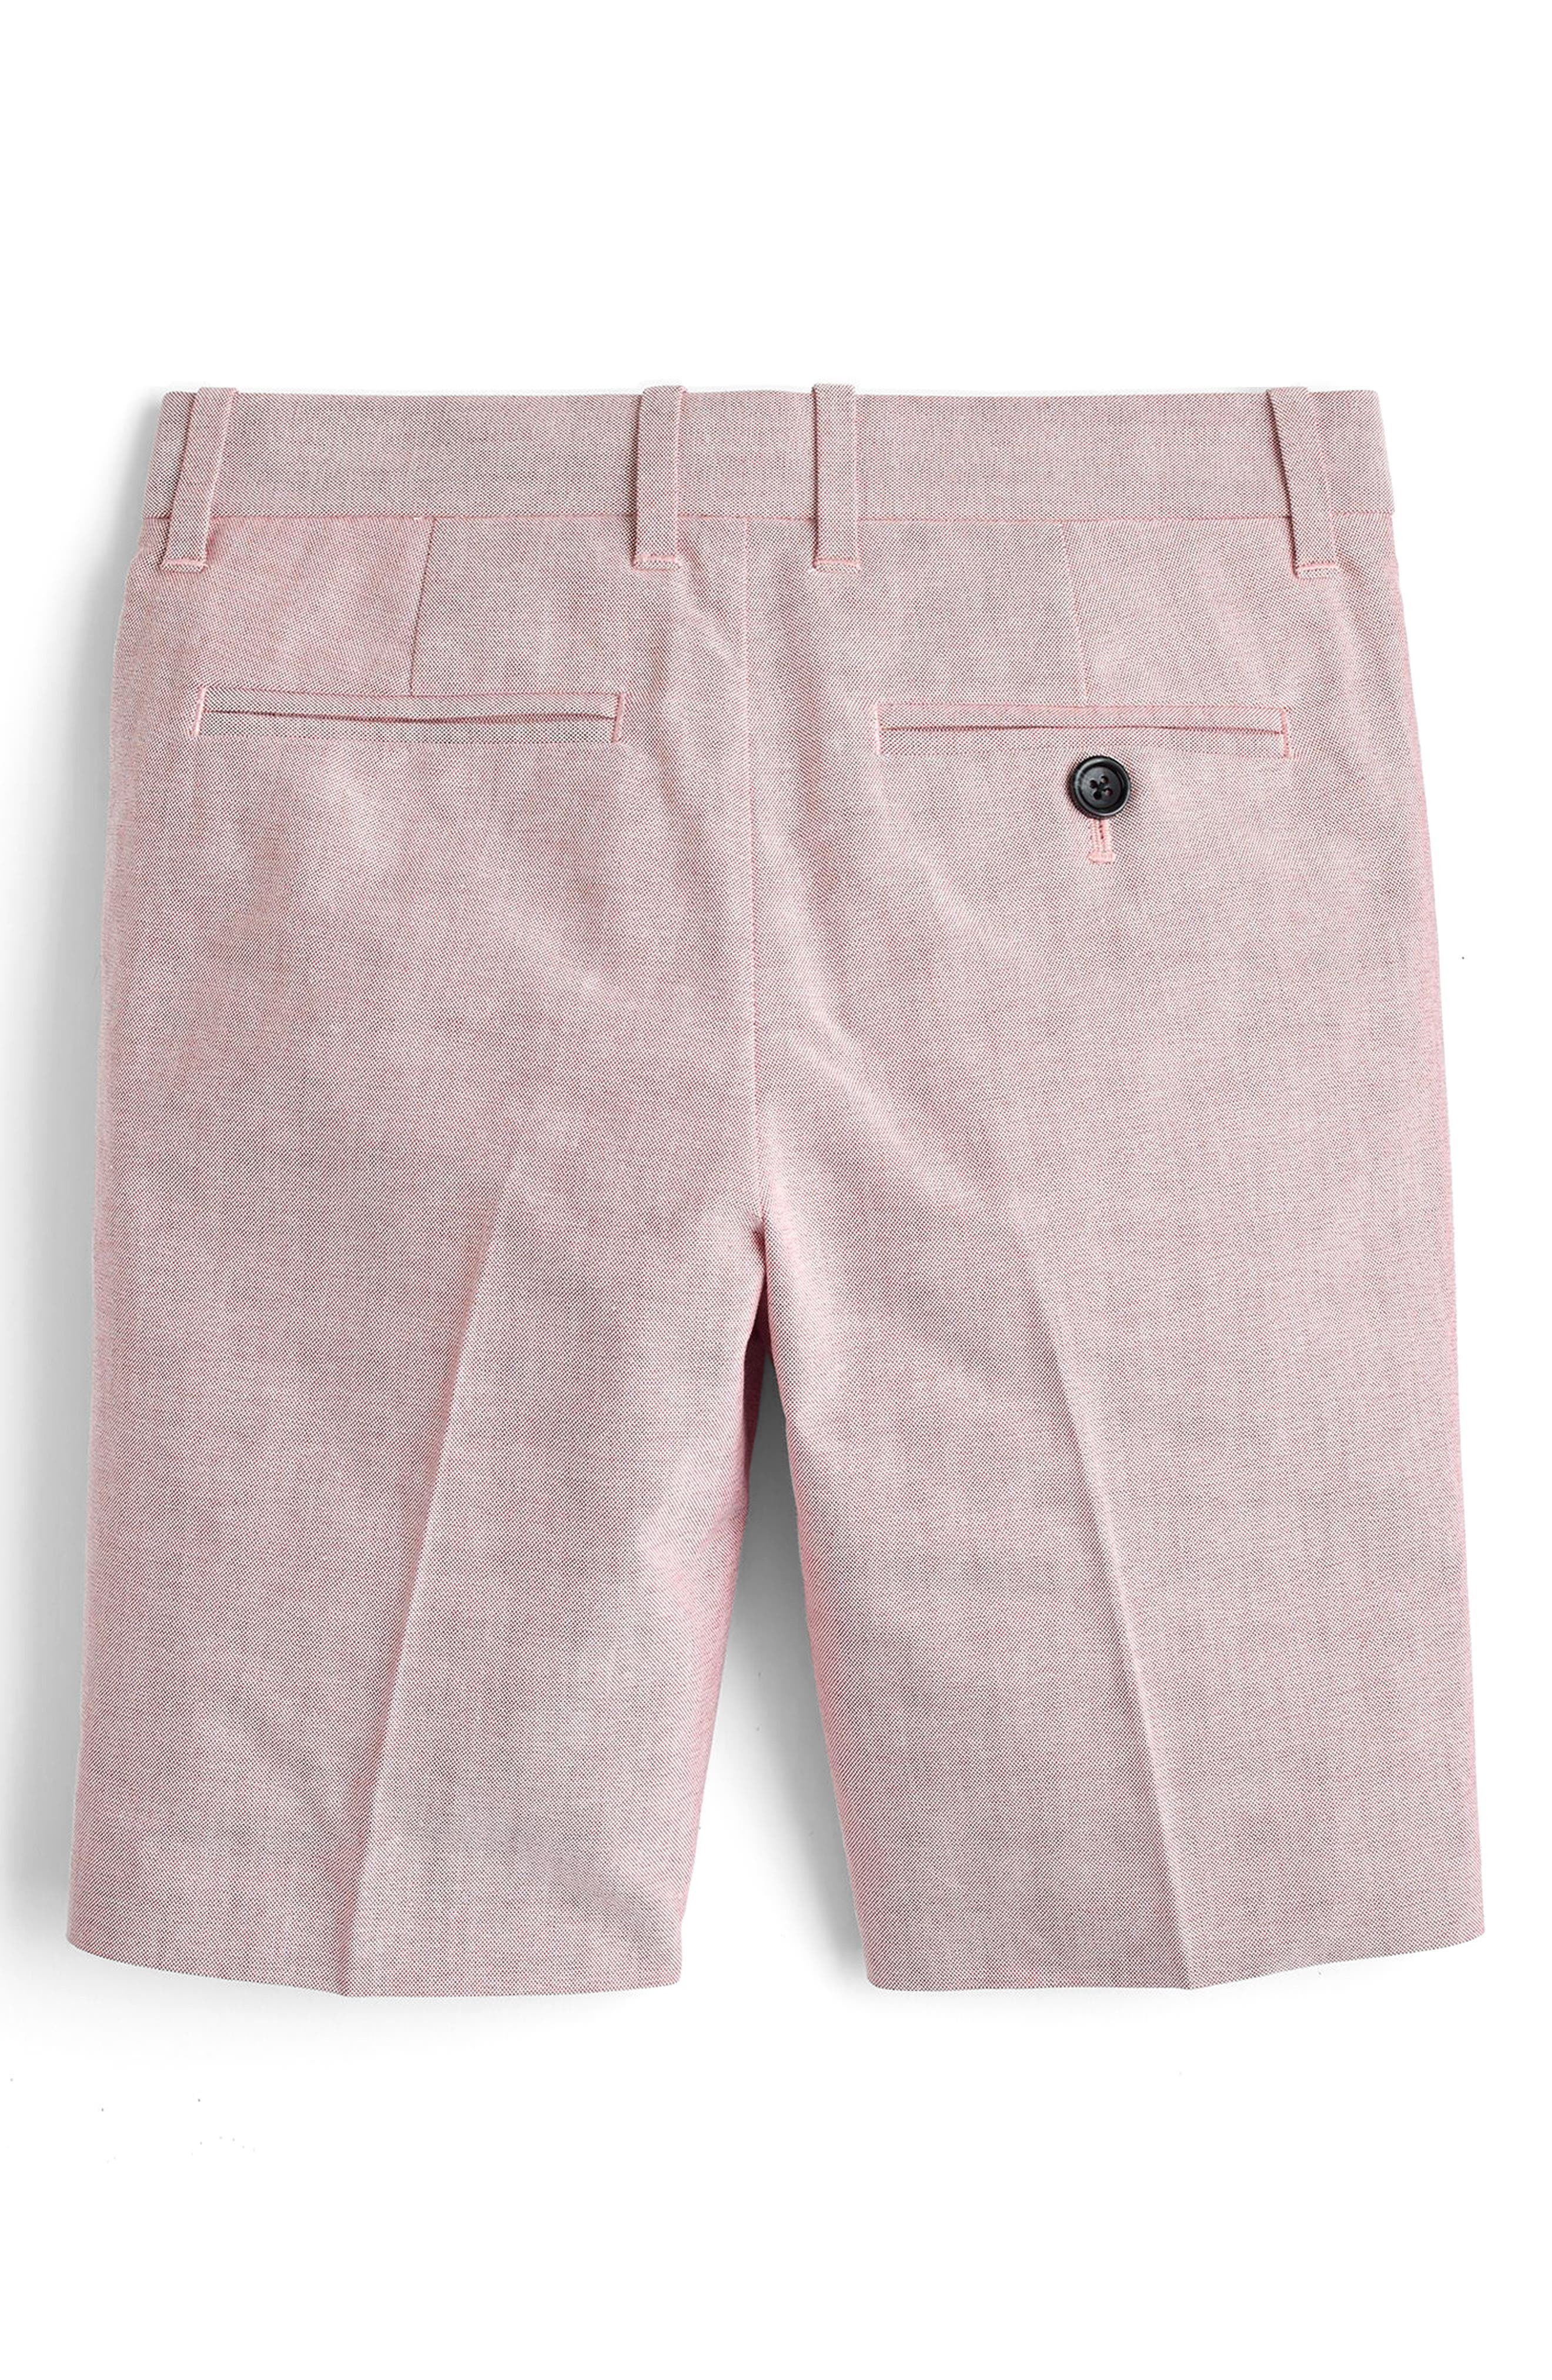 Ludlow Stretch Oxford Suit Shorts,                             Alternate thumbnail 2, color,                             600